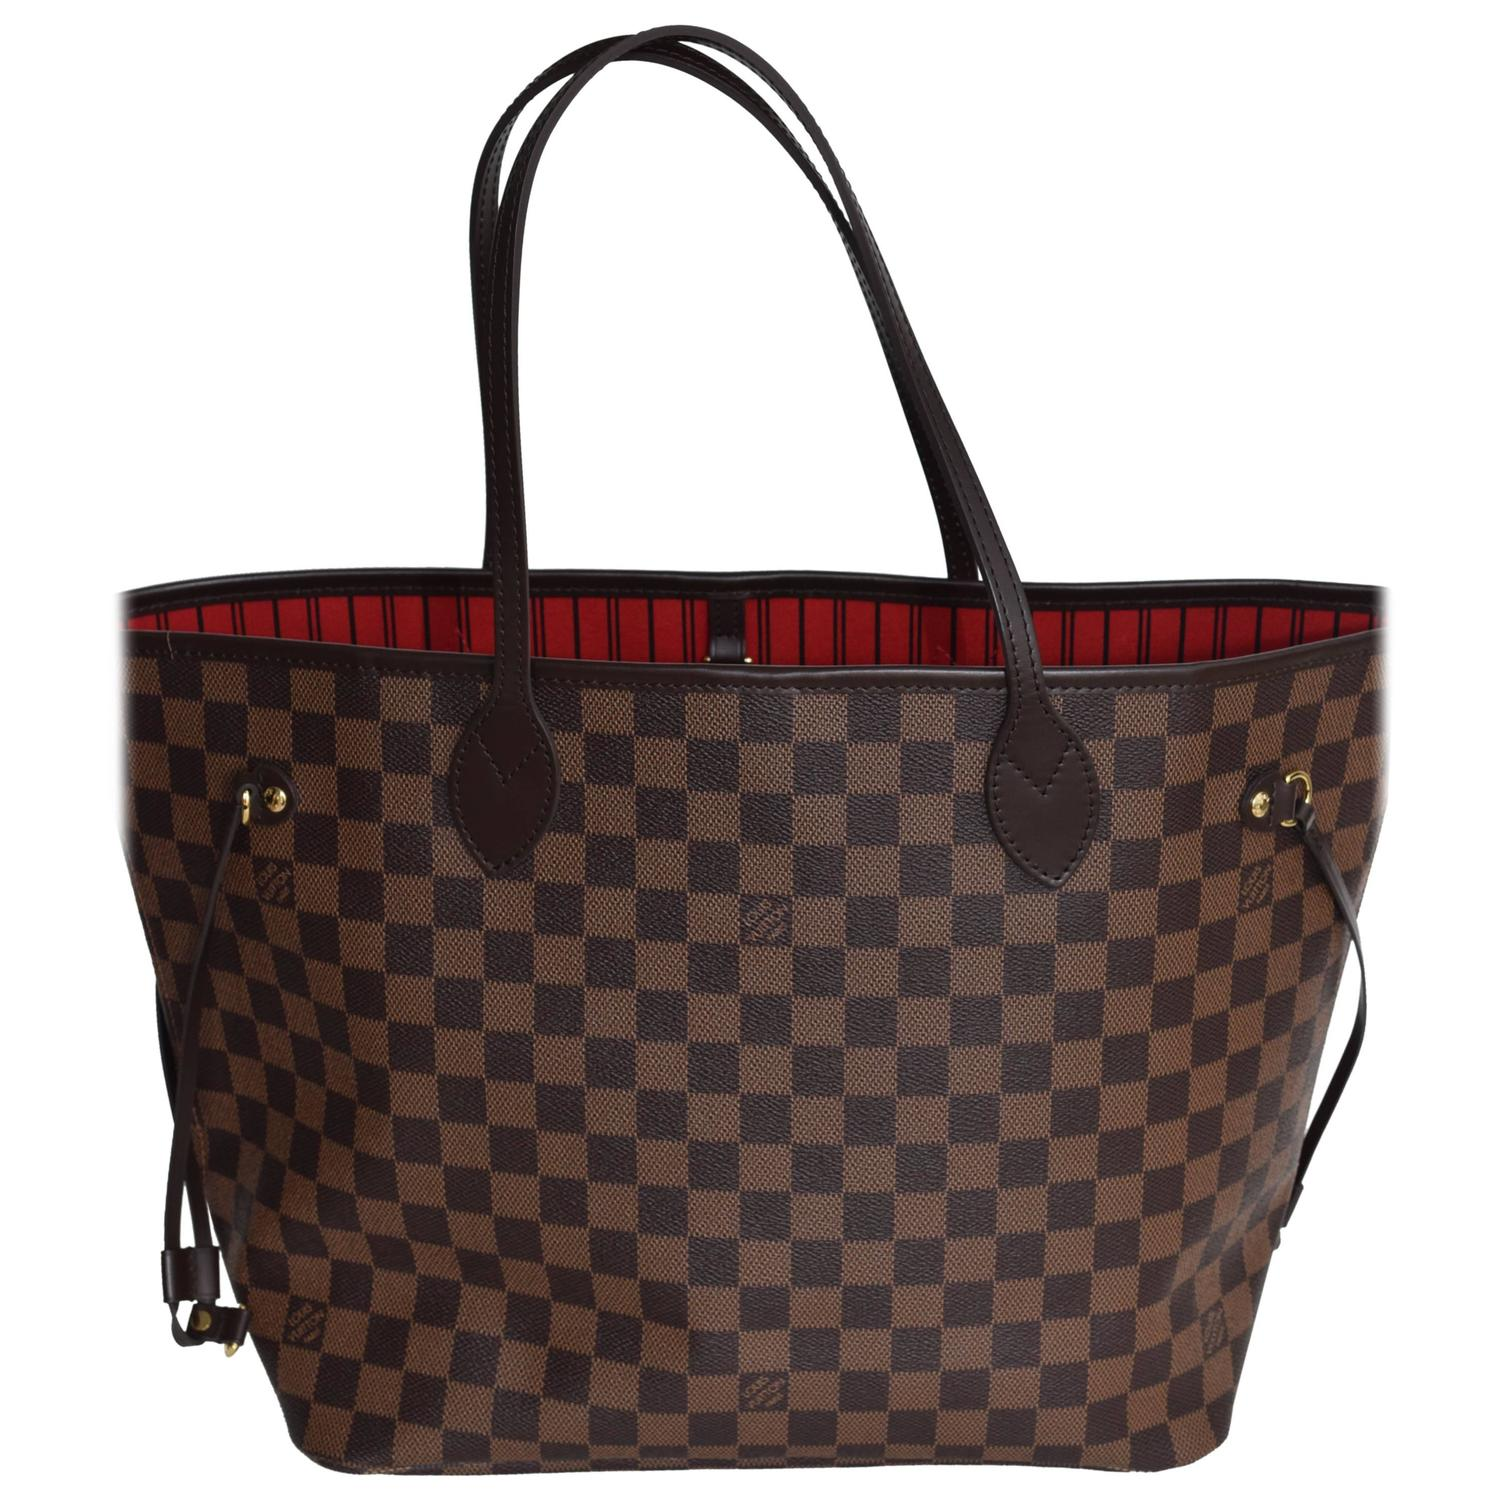 number louis vuitton date code early 1980s